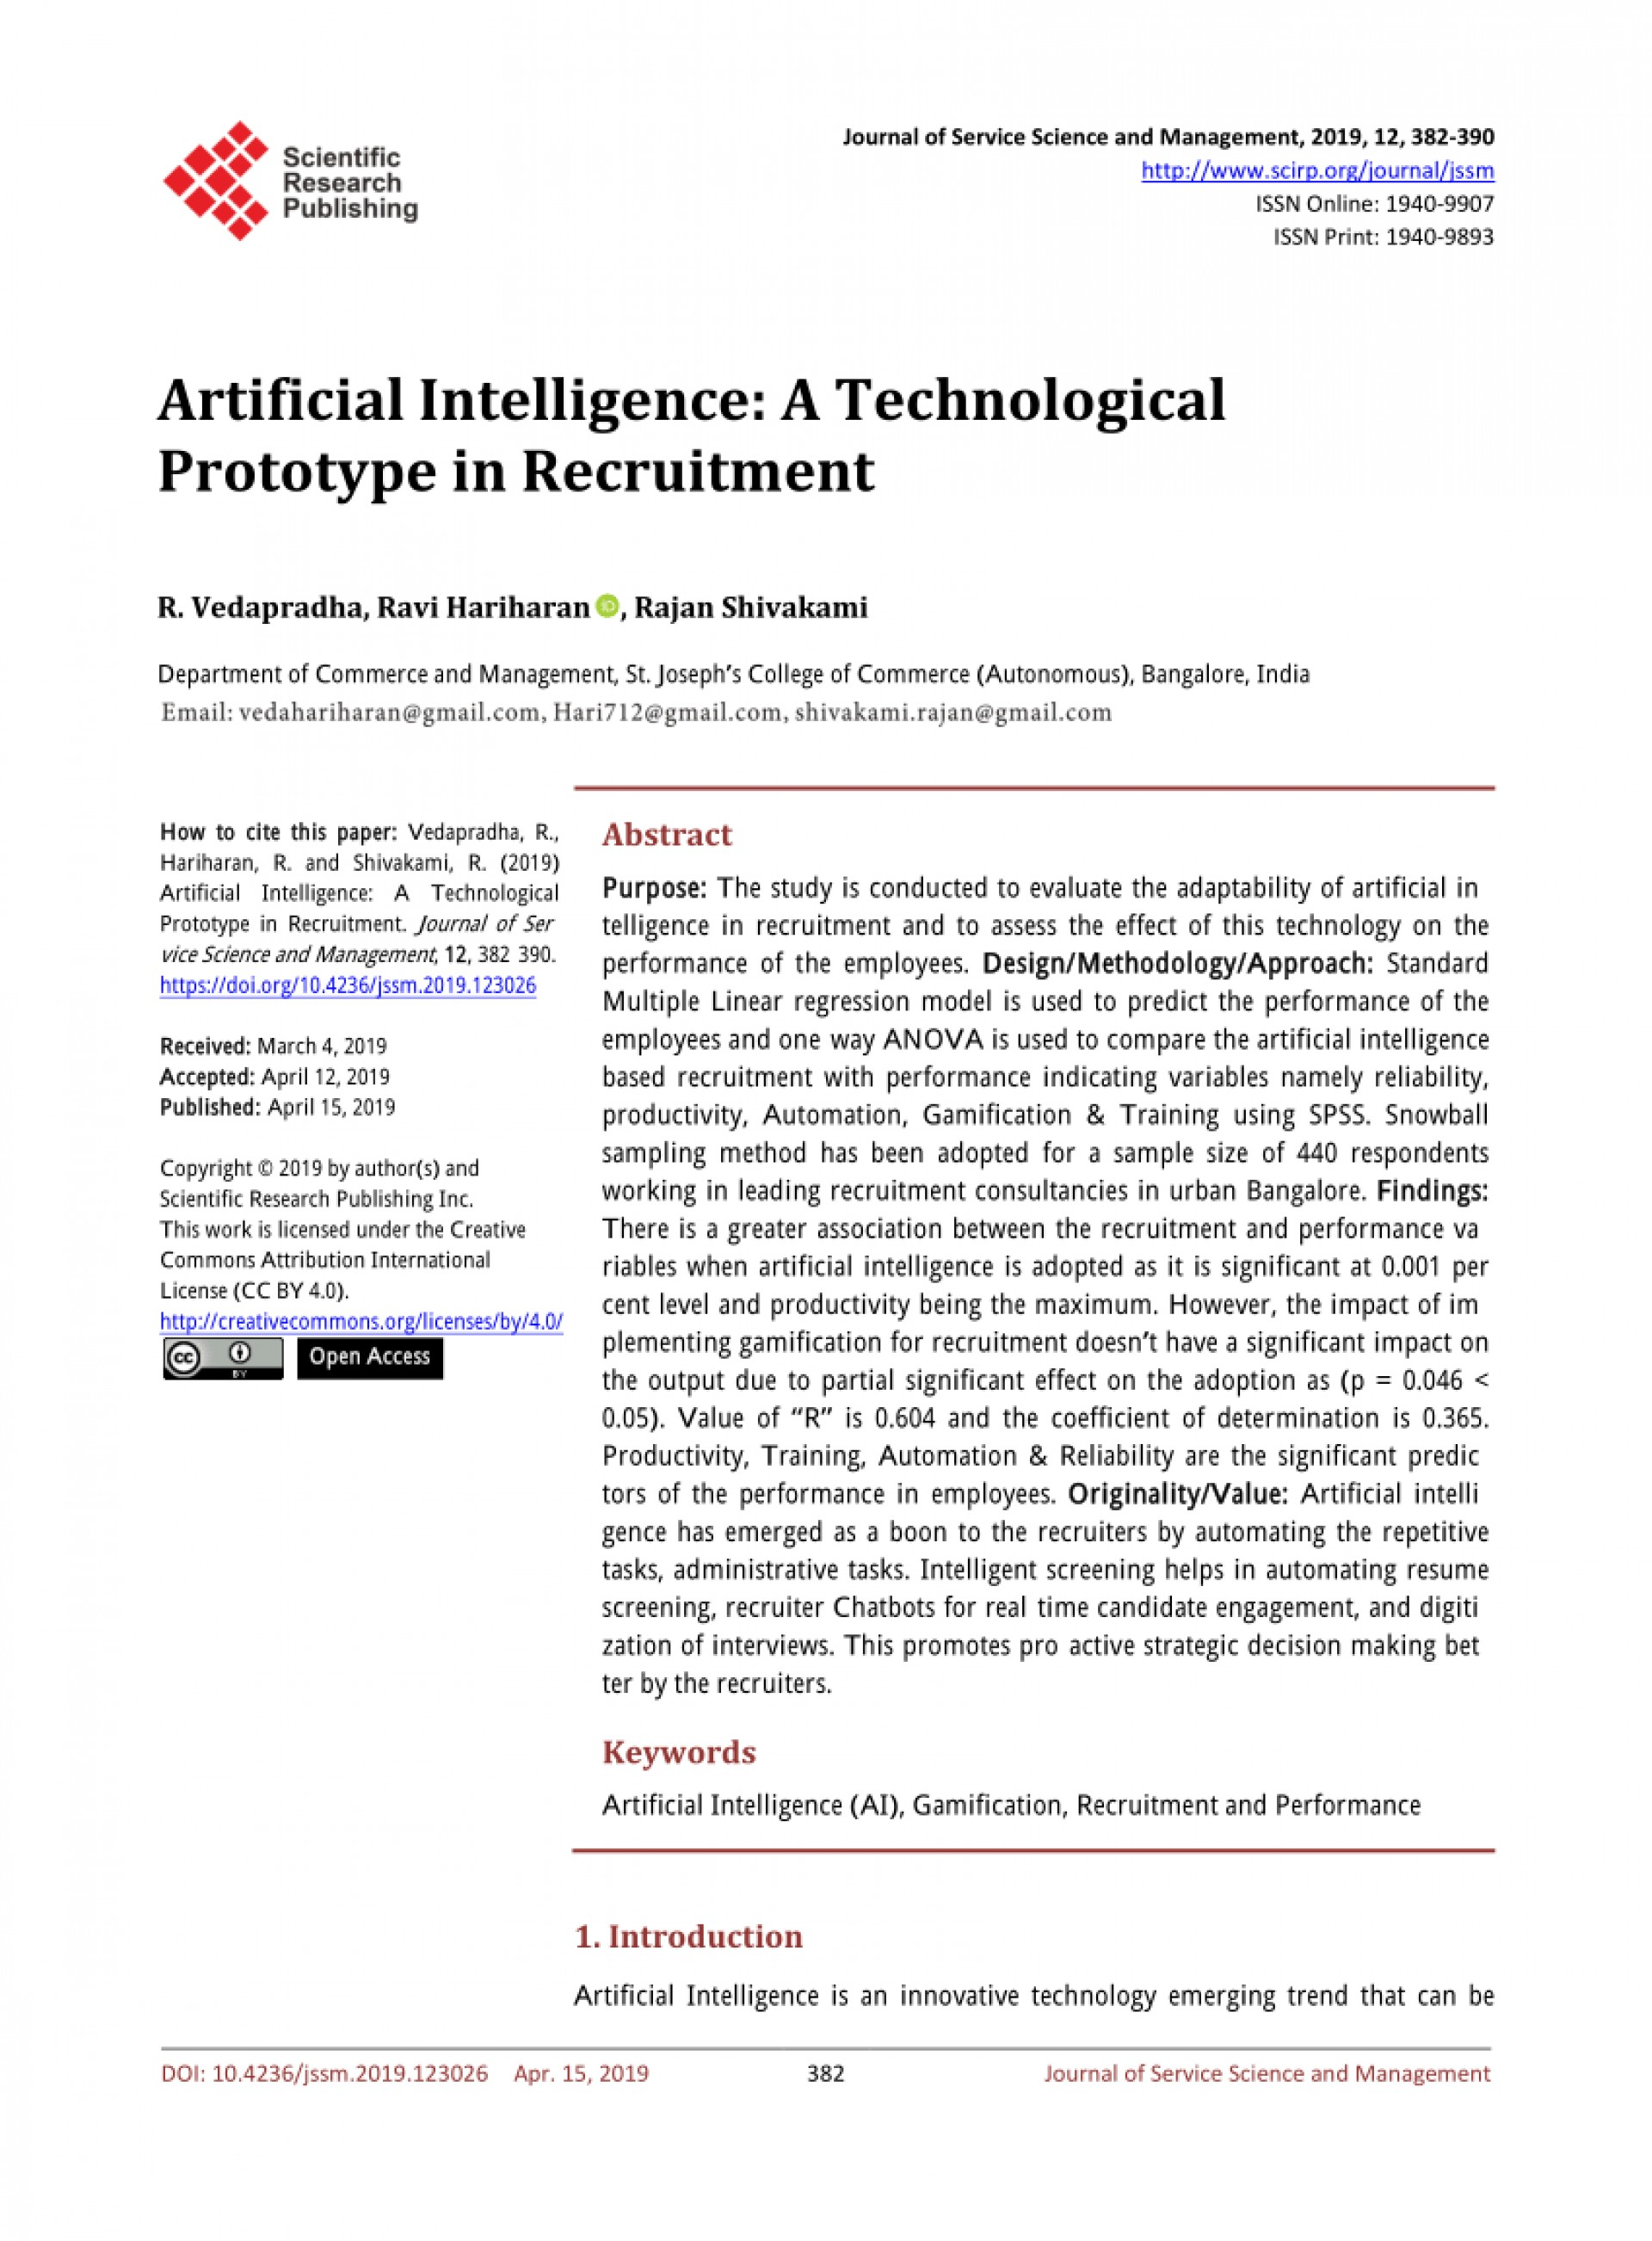 017 Artificial Intelligence Research Paper Awful 2019 1920